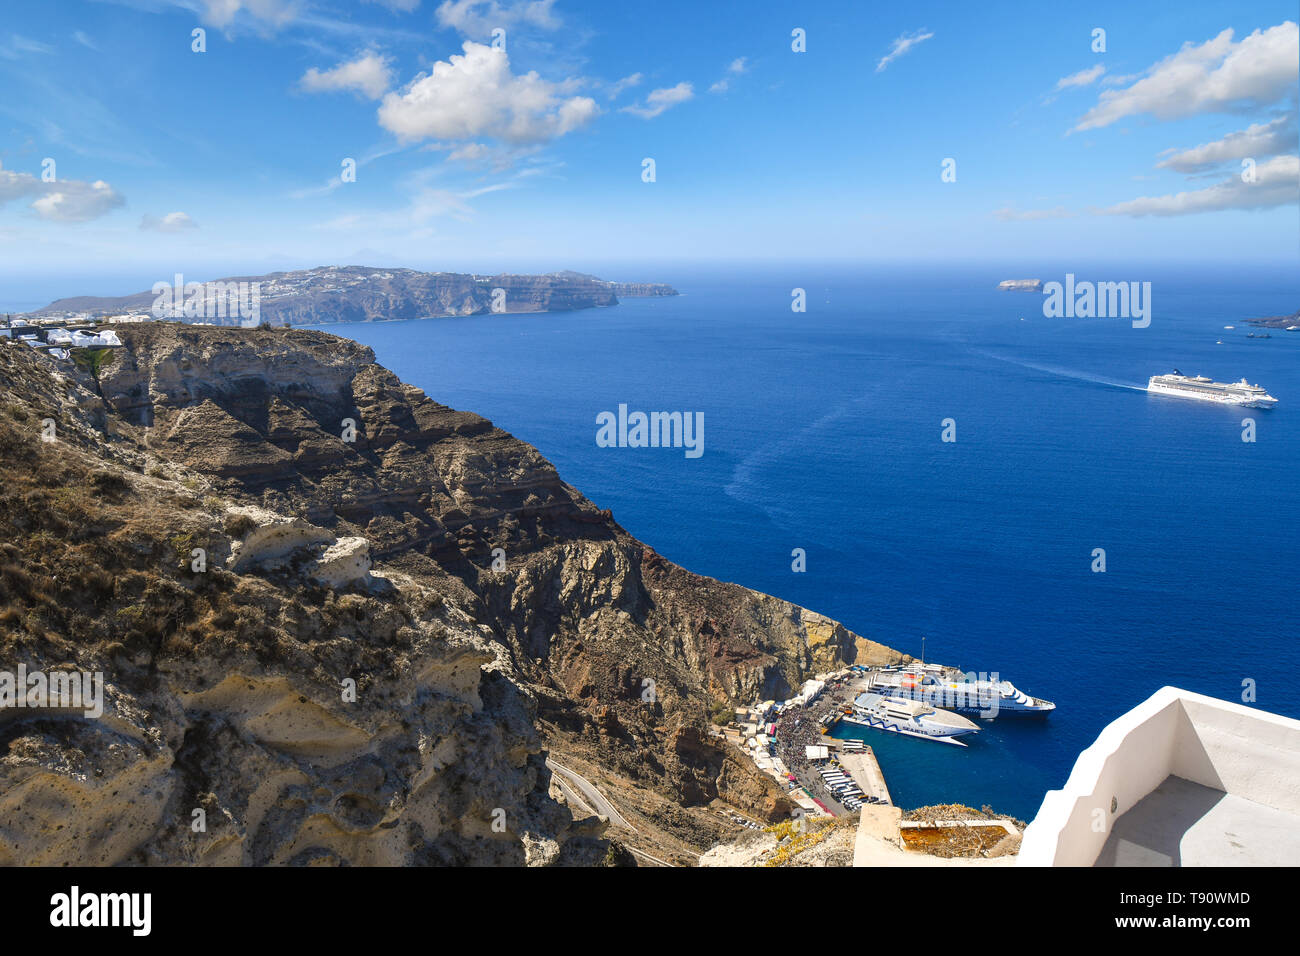 View from the hills near Oia of the cruise and boat port and ships at sea inside the caldera on the island of Santorini, Greece. Stock Photo